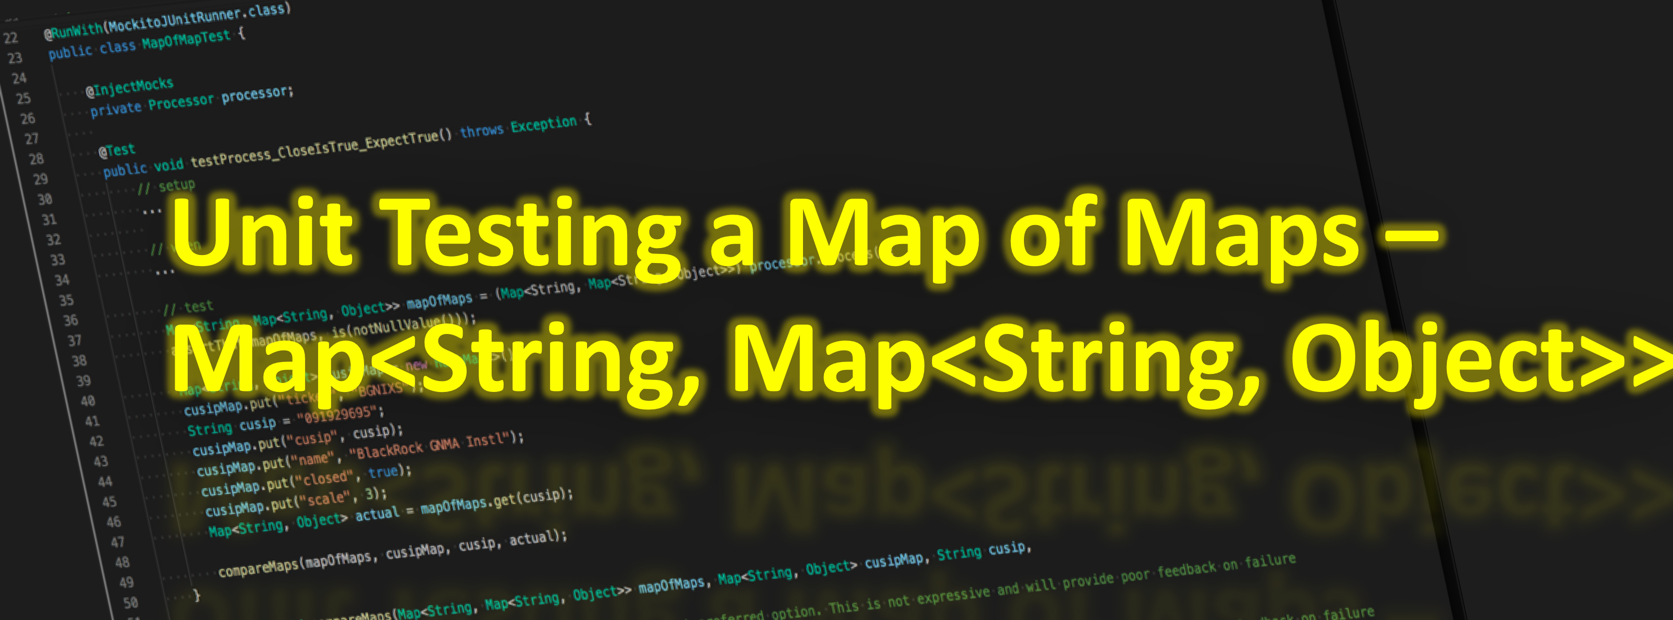 Map of Maps JUnit Test